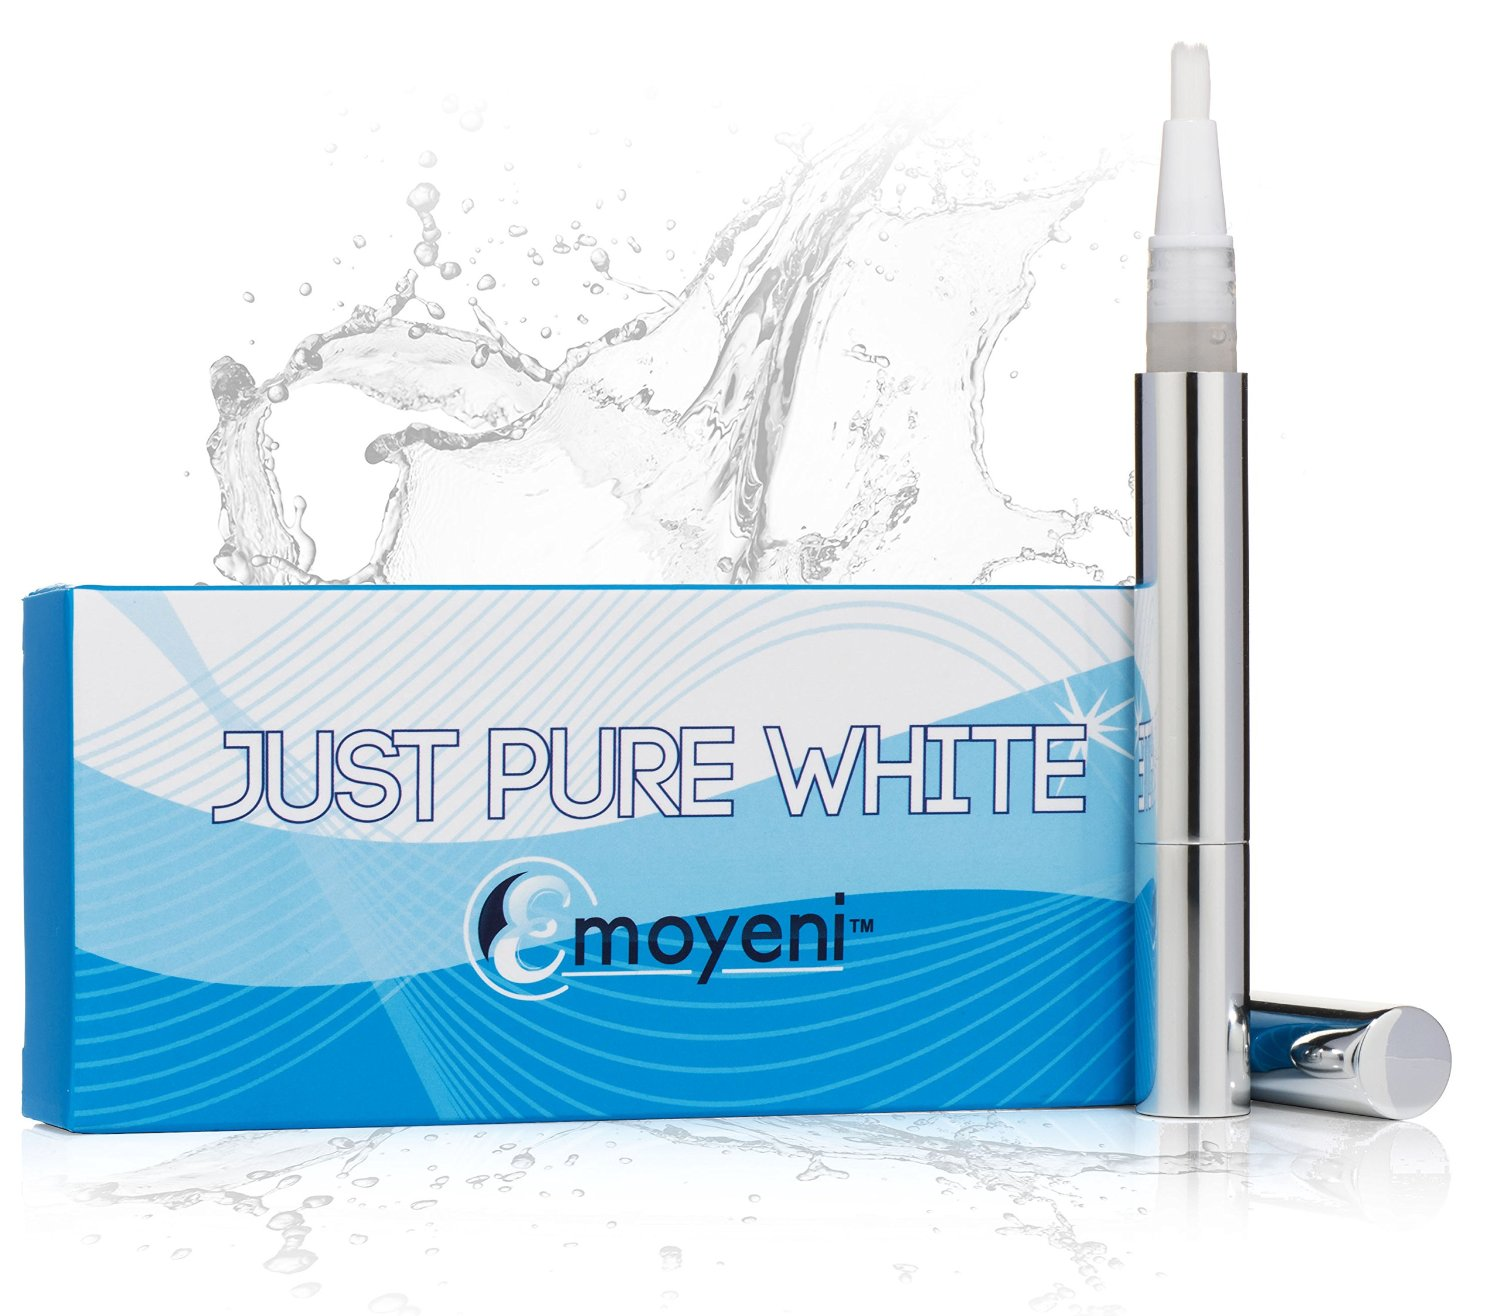 Just pure white teeth whitening pen